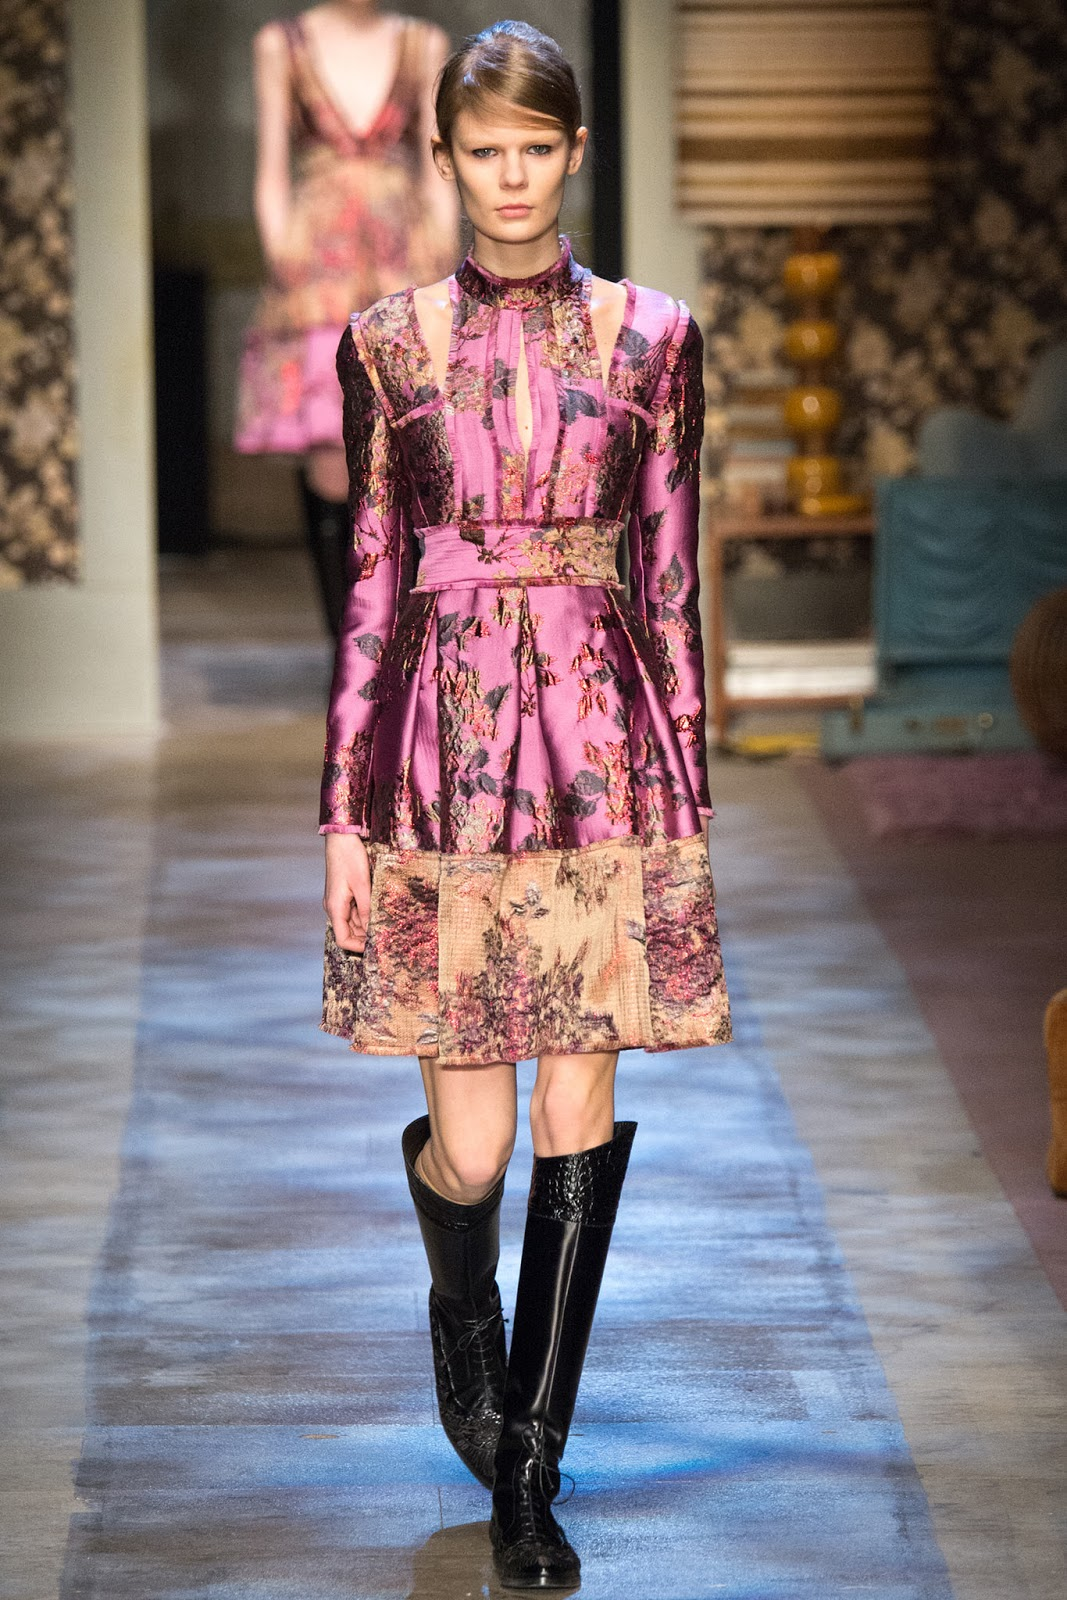 Brocade trend on AW 2015 runway at Erdem / via www.fashionedbylove.co.uk